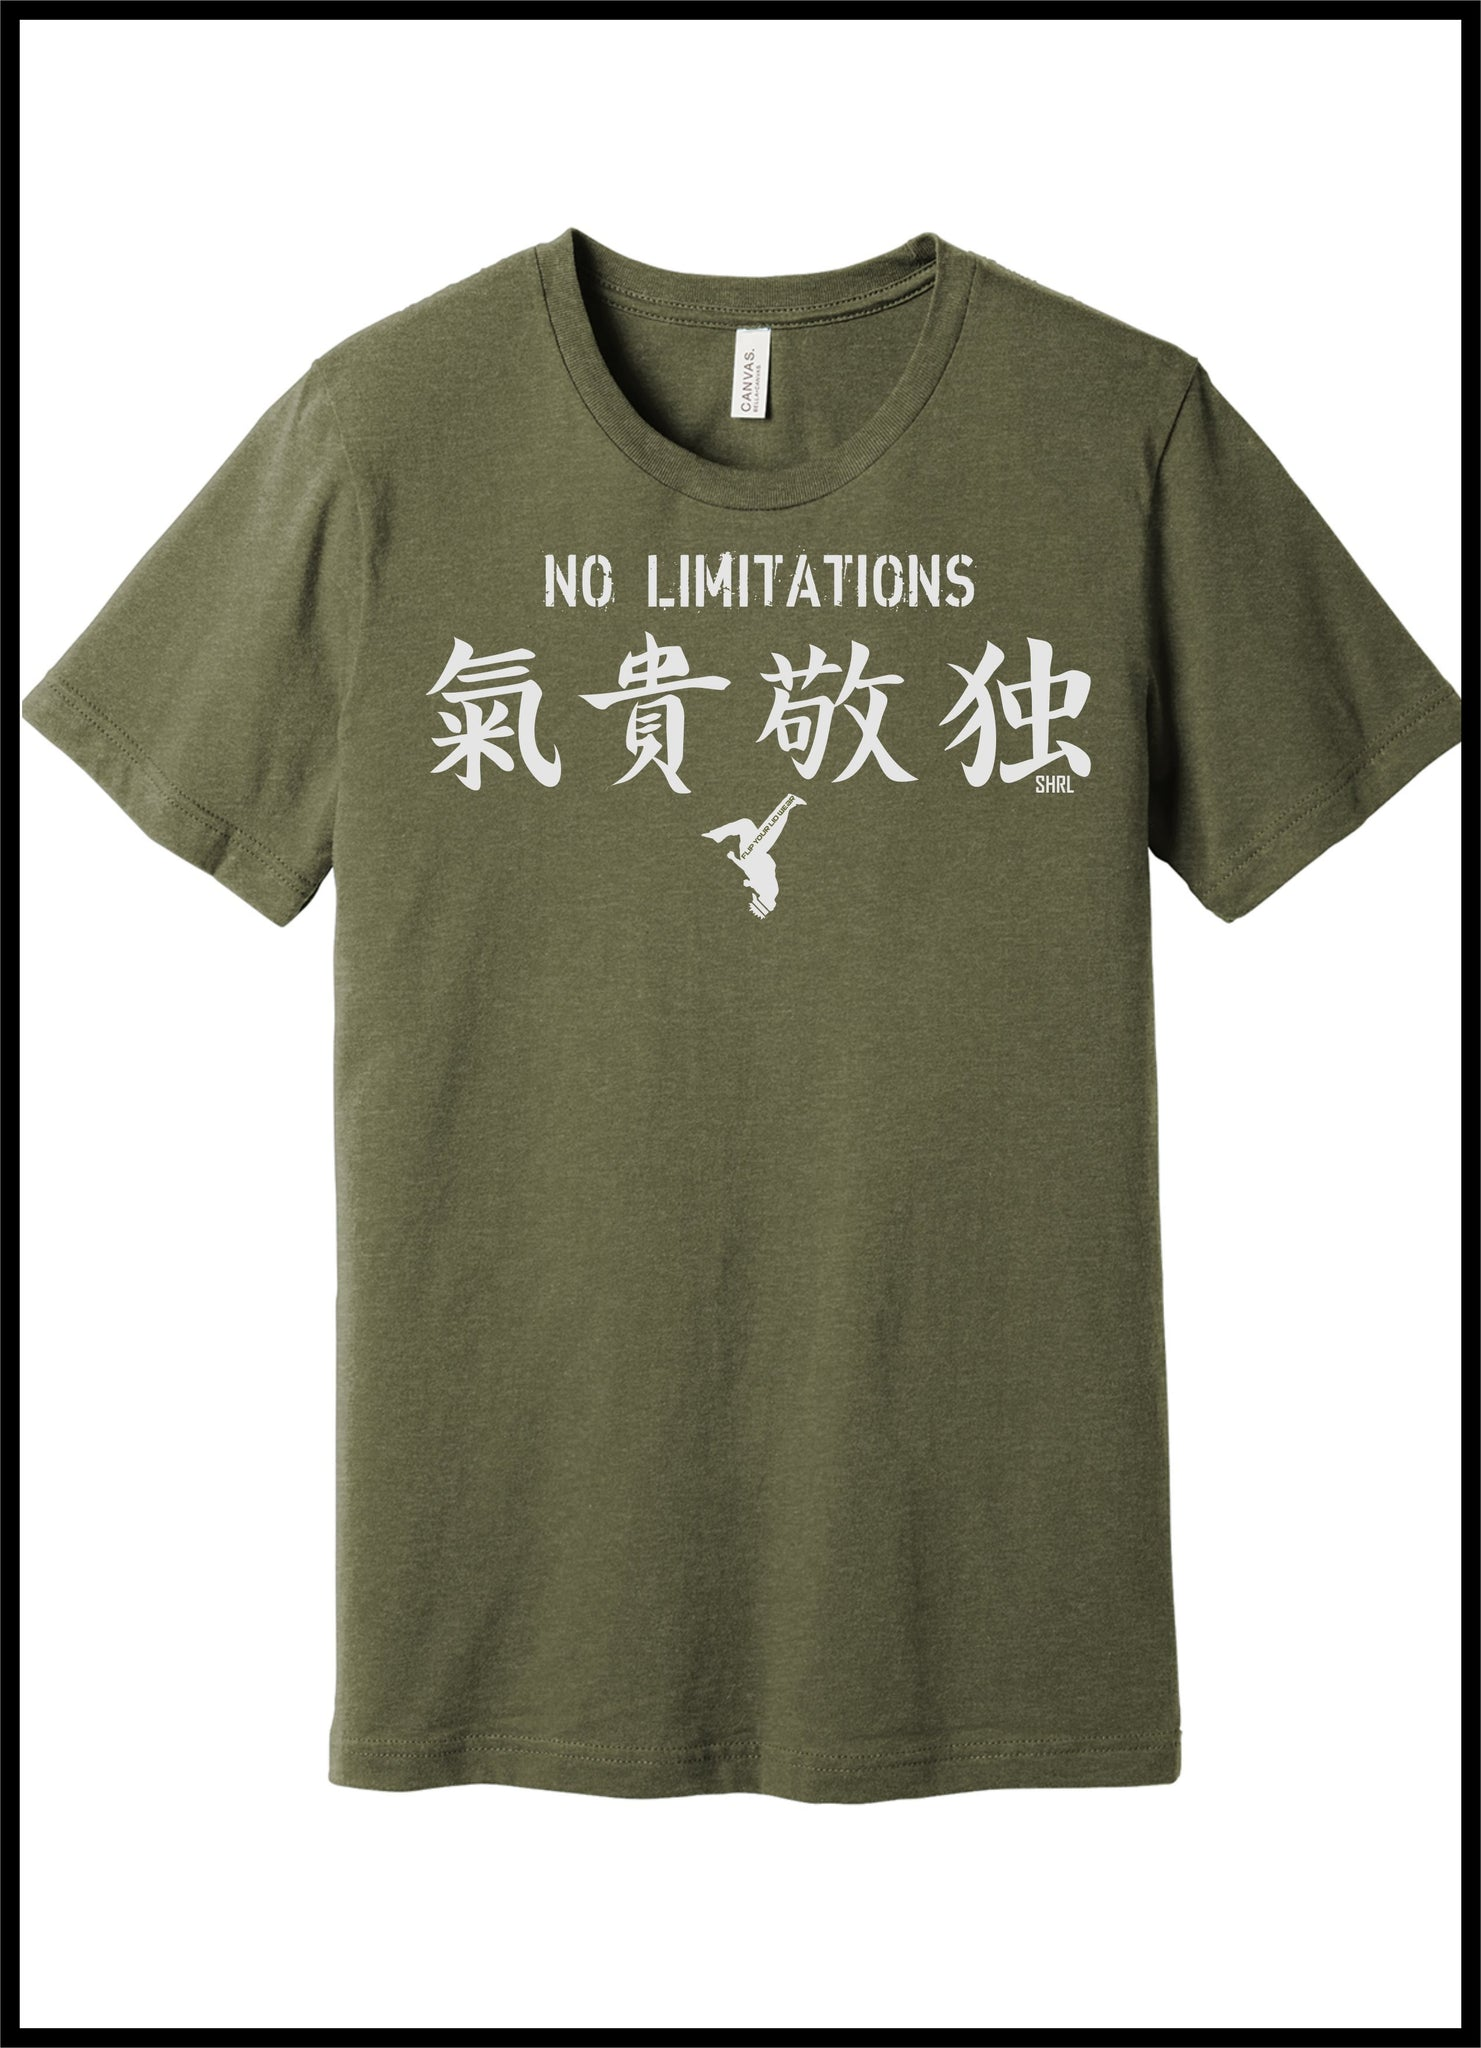 NO LIMITATIONS TEE